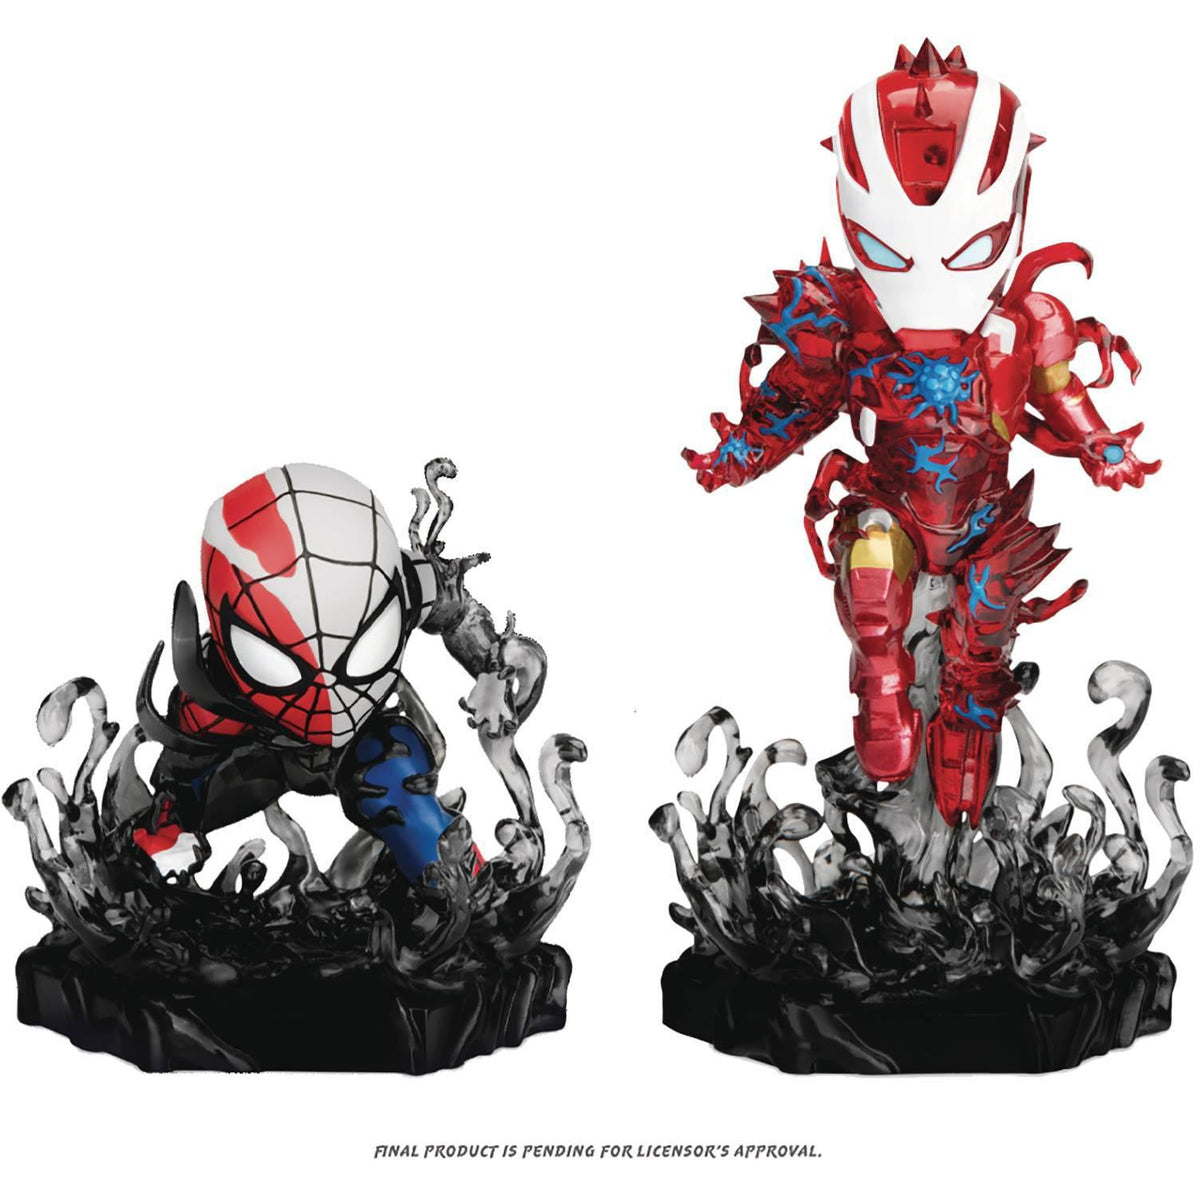 SDCC 2020 MARVEL MAXIMUM VENOM SPECIAL FIGURE 2-PACK - MEA-018SP - MINI EGG ATTACK